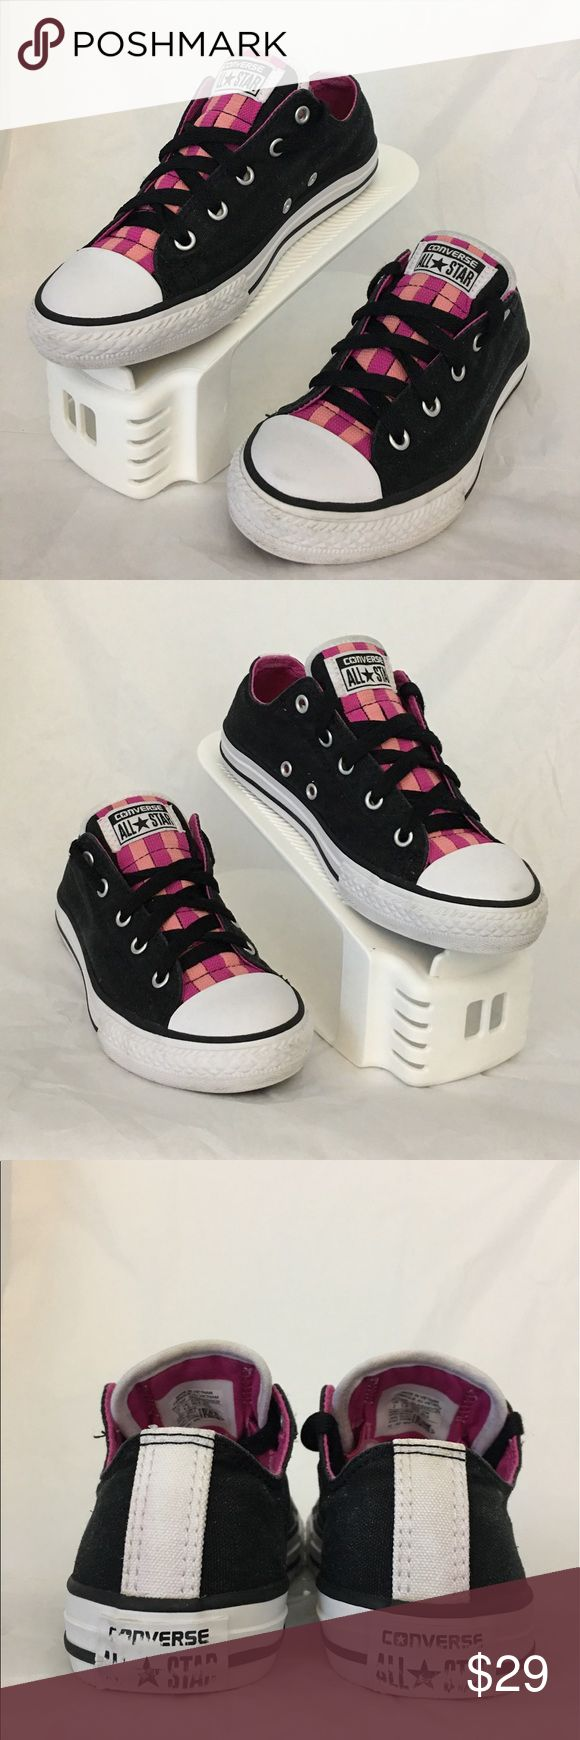 Converse All Star Shoes Pre owned Converse All Star Shoes in excellent just out of the washing machine condition! Zoom in on the pictures!  Smoke and pet free house. Converse Shoes Sneakers